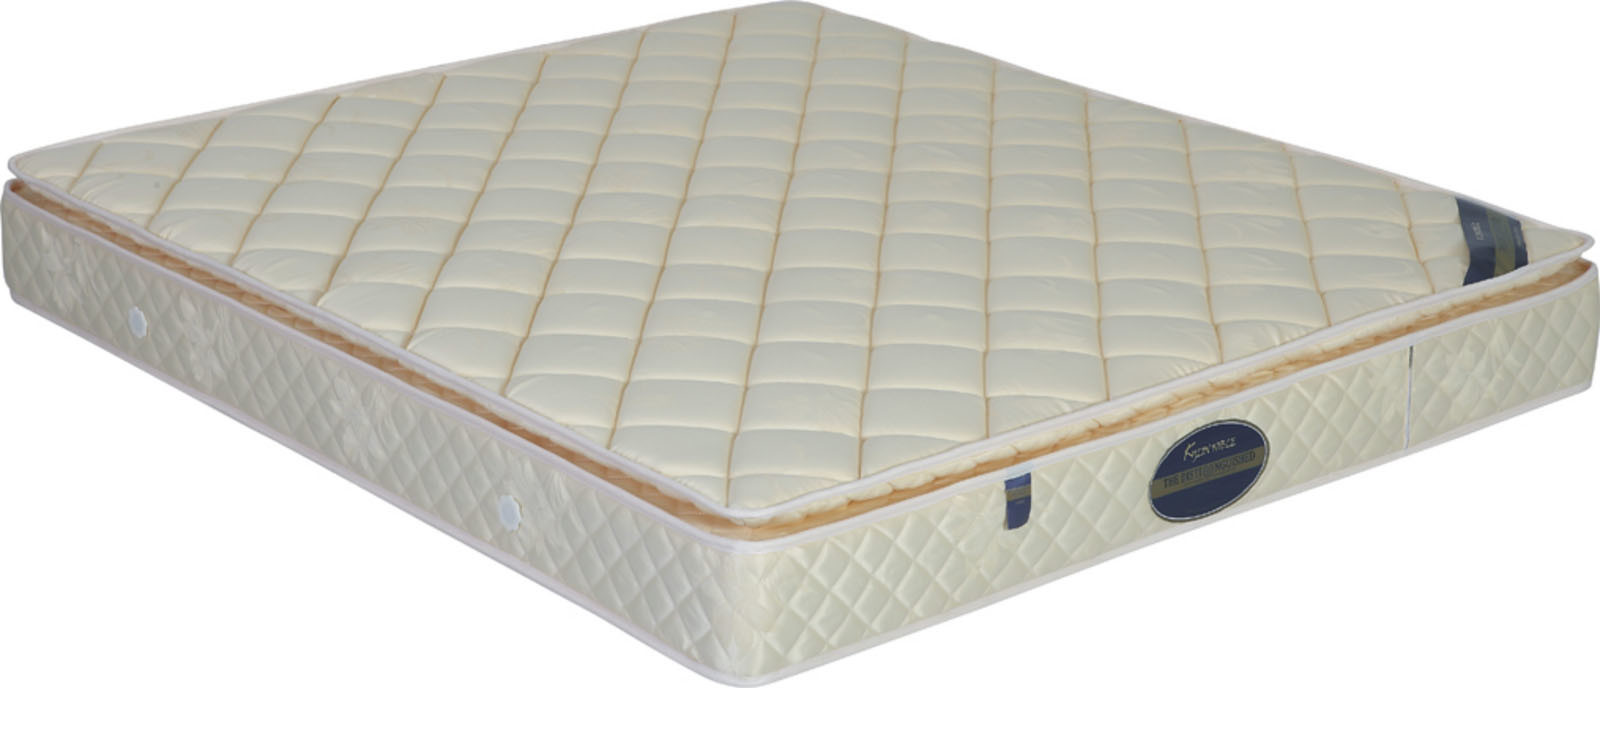 China Spring Mattress Foam Mattress Pocket Spring Mattress Ym 43 China Spring Mattress Foam